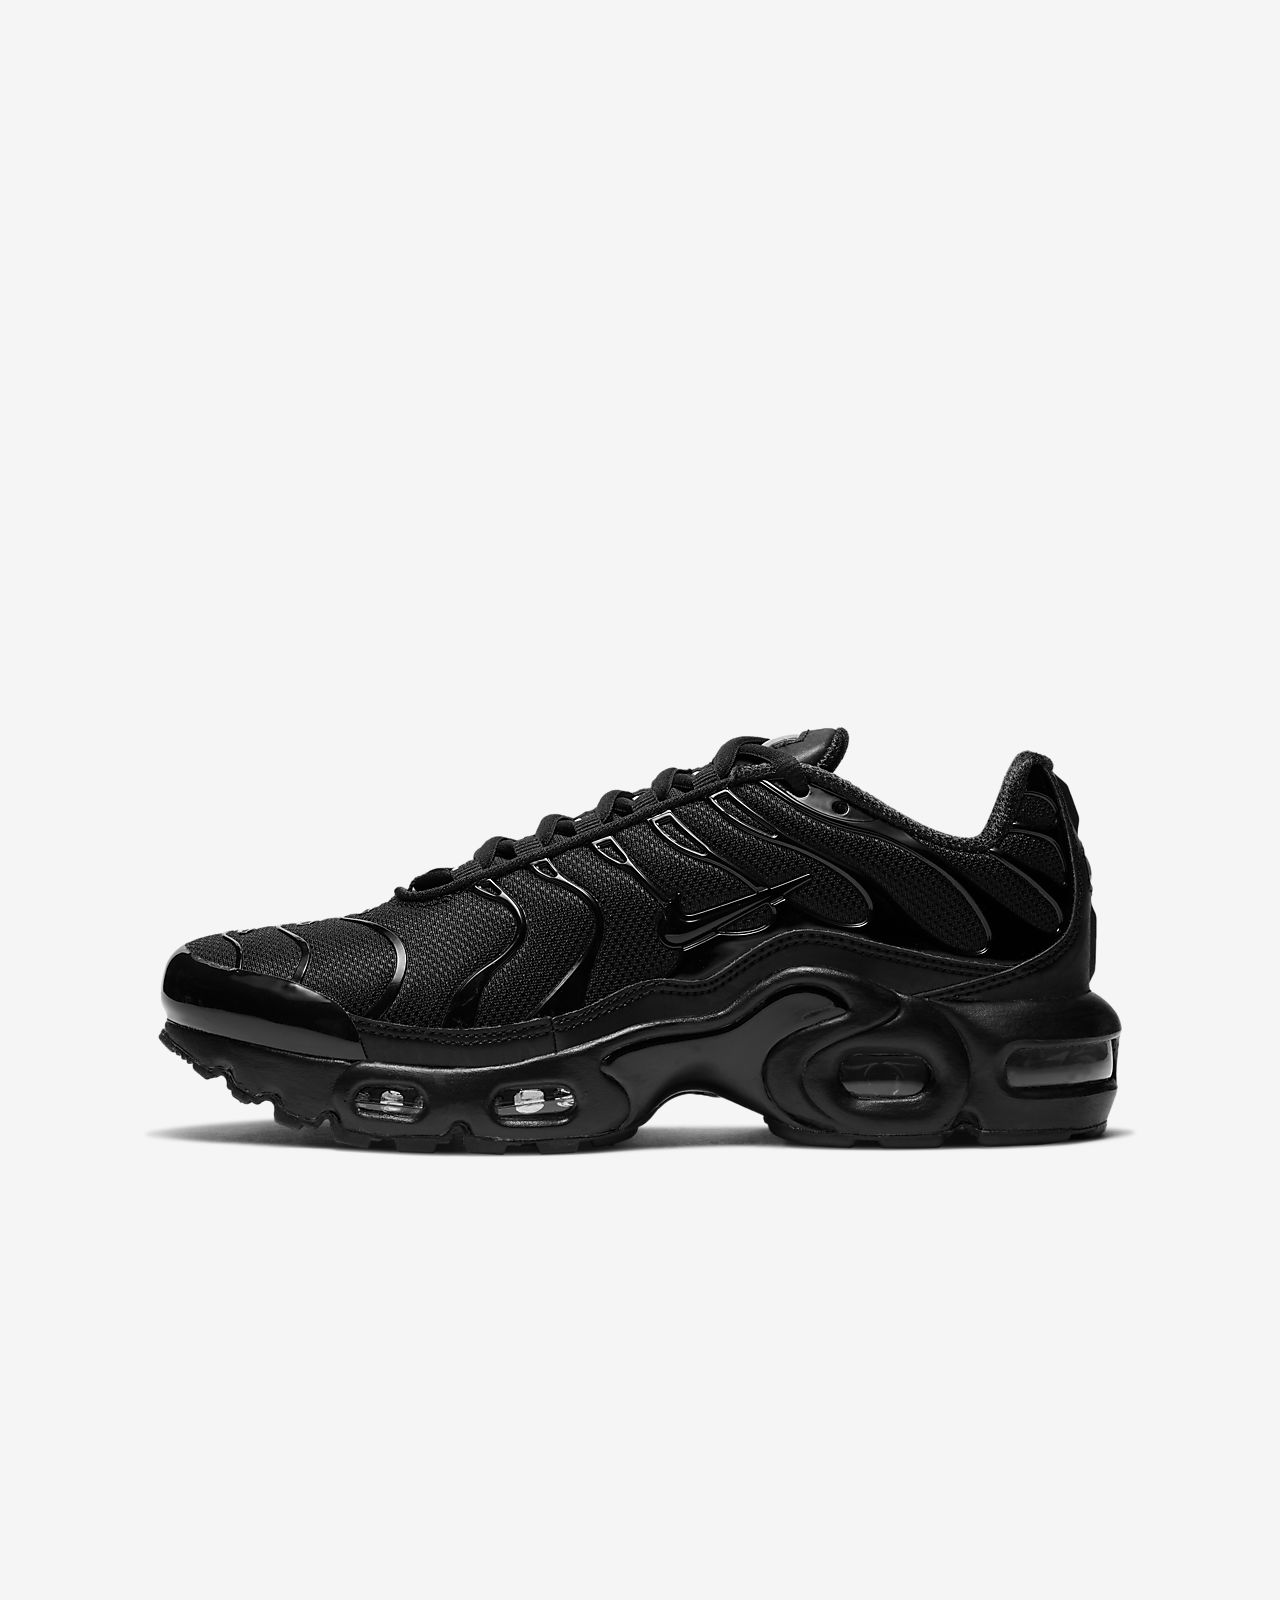 nike air max plus mäns vit